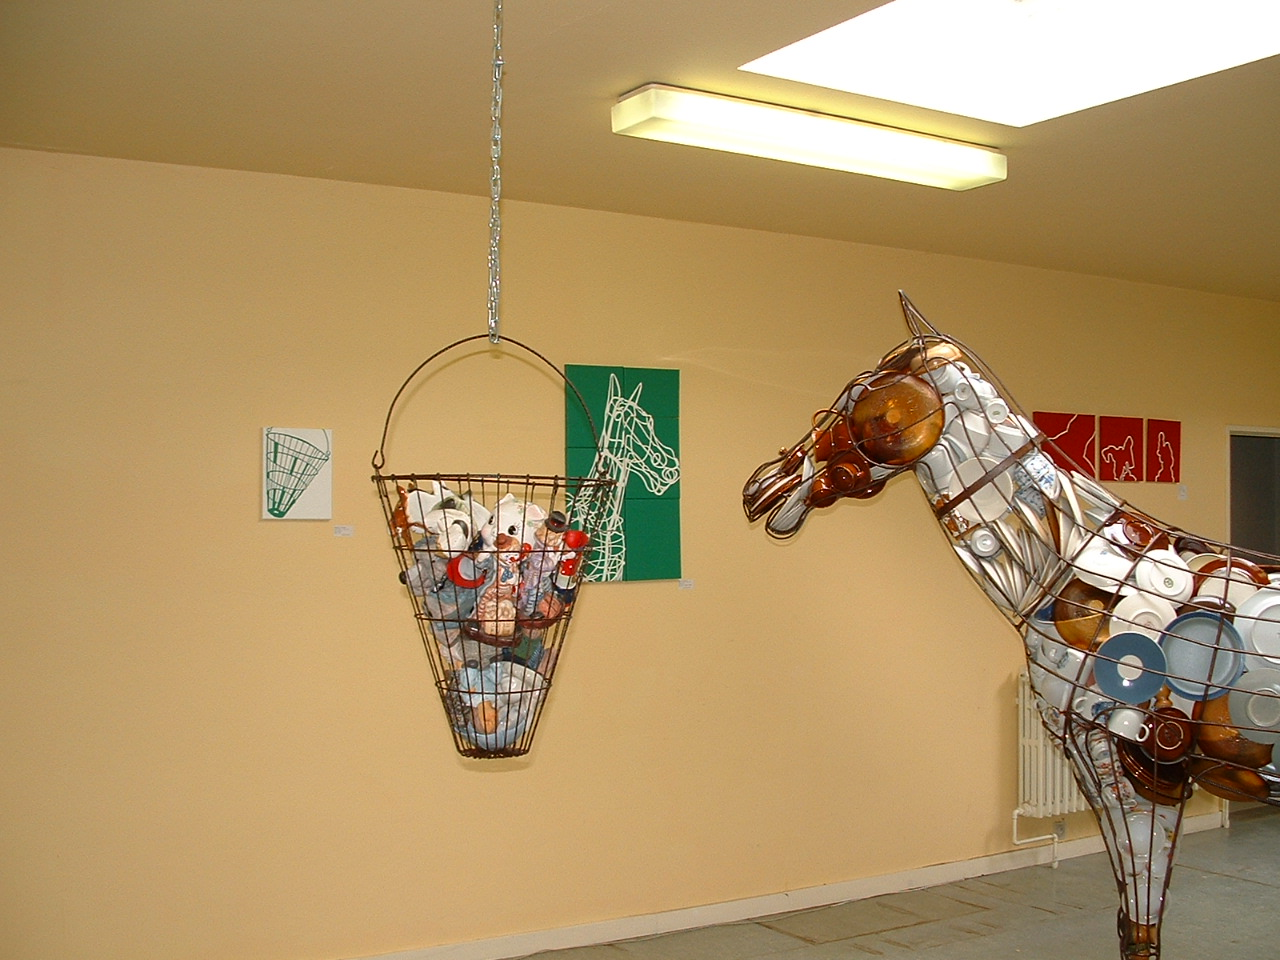 Herwig Nulens_My kingdom for a horse_2008